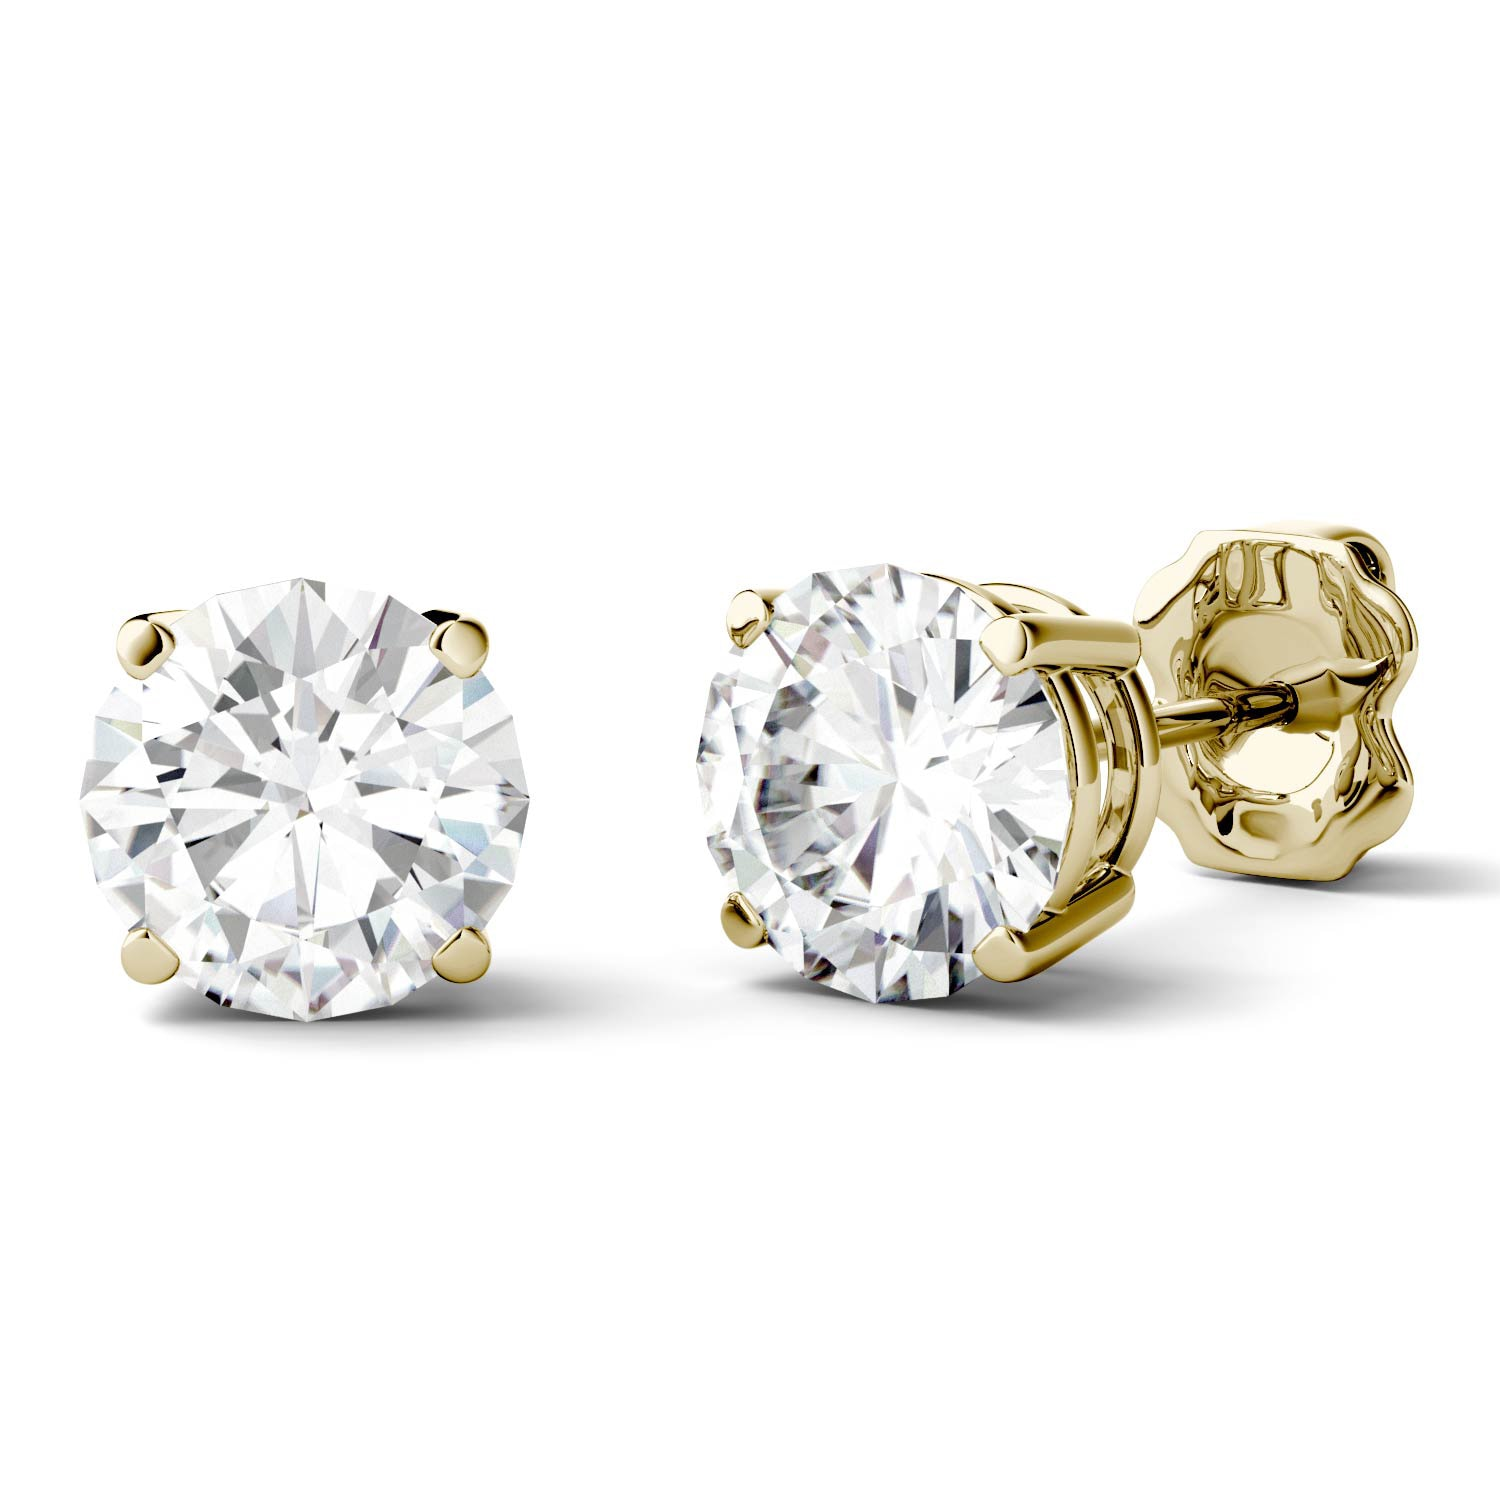 white modesens diamond product earring single one king vanrycke earrings